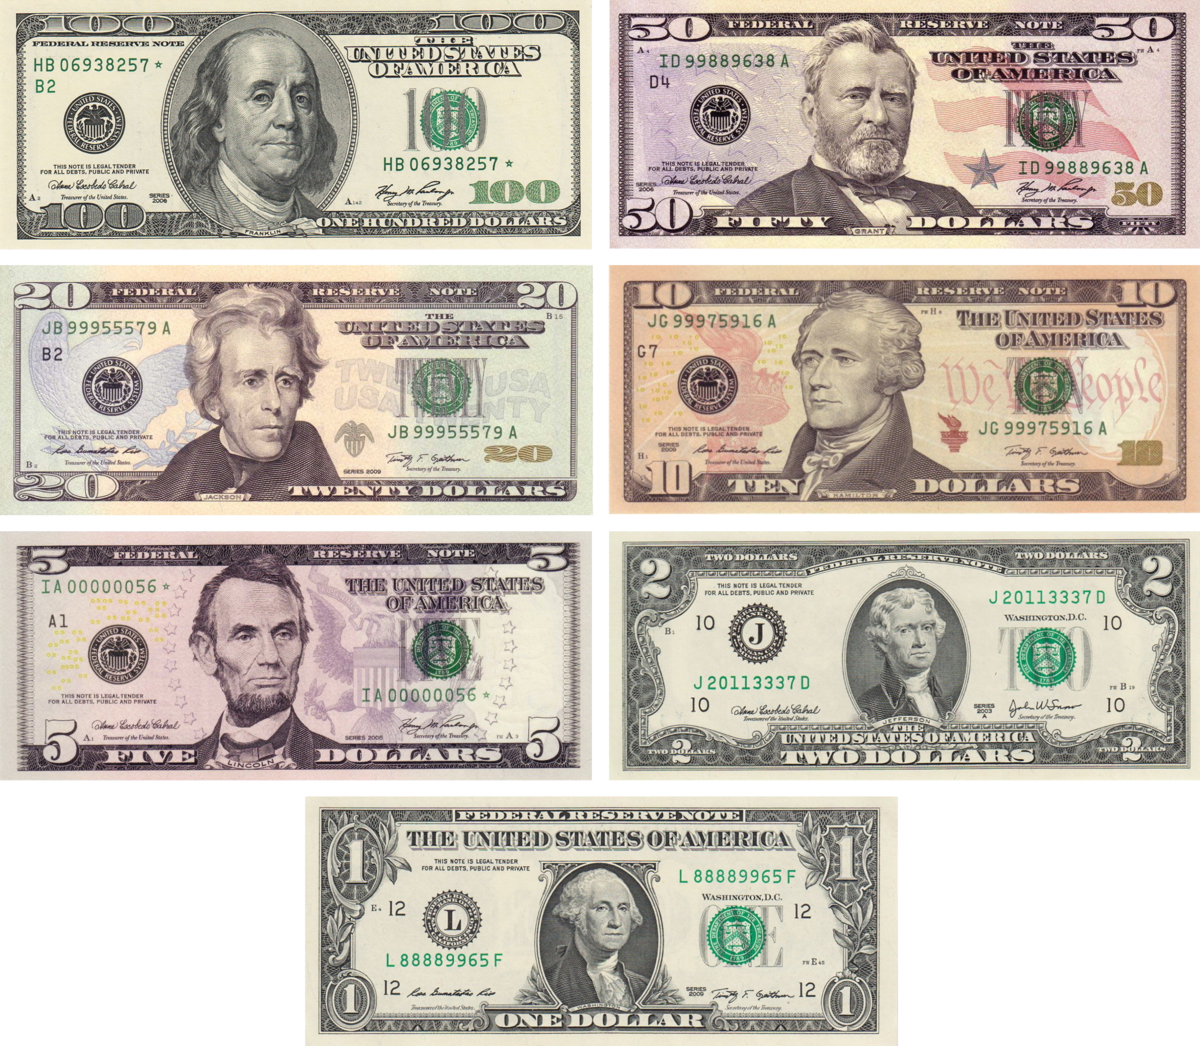 united states dollar The united states dollar ( sign : $ code : usd also abbreviated us$ and referred to as the dollar , us dollar , or american dollar ) is the official currency of the united states and its insular territories per the united states constitution it is divided into 100 smaller cent ( ) units.